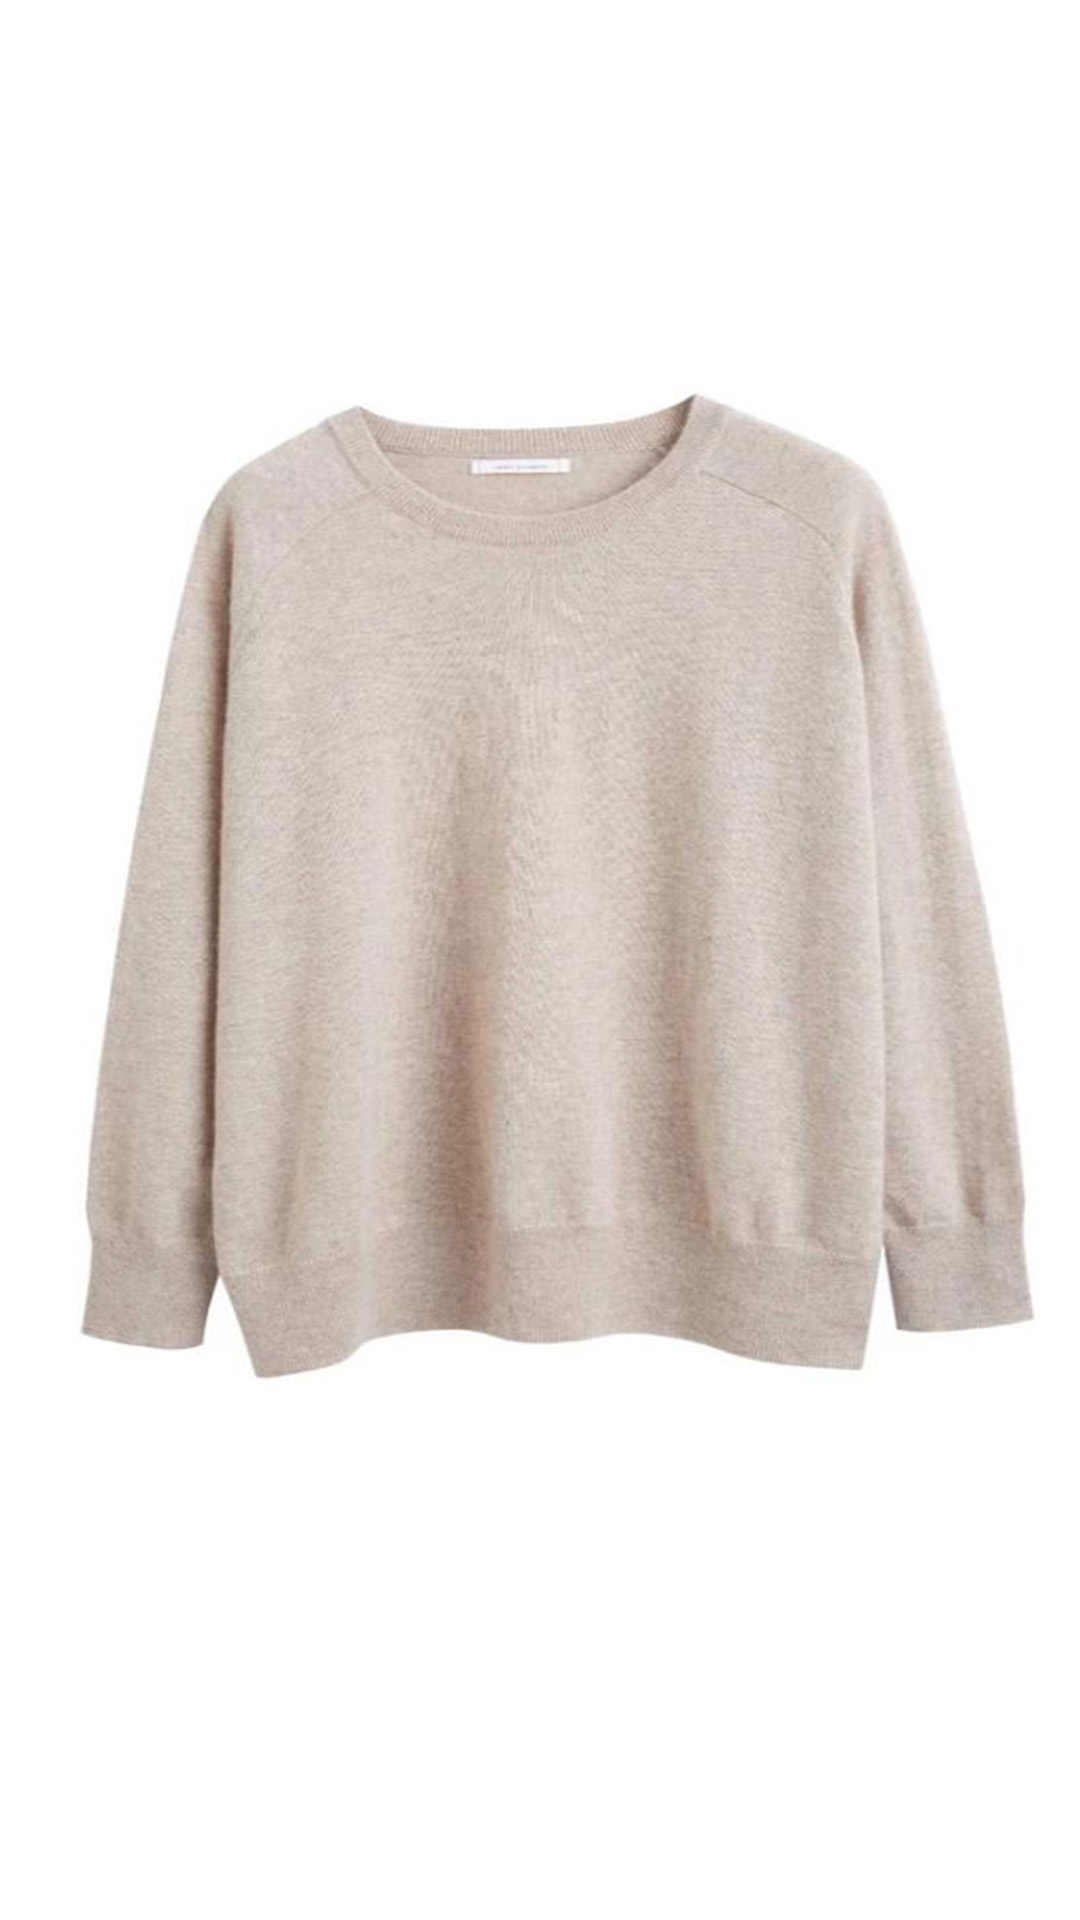 CHINTI & PARKER Cashmere Slouchy Sweater